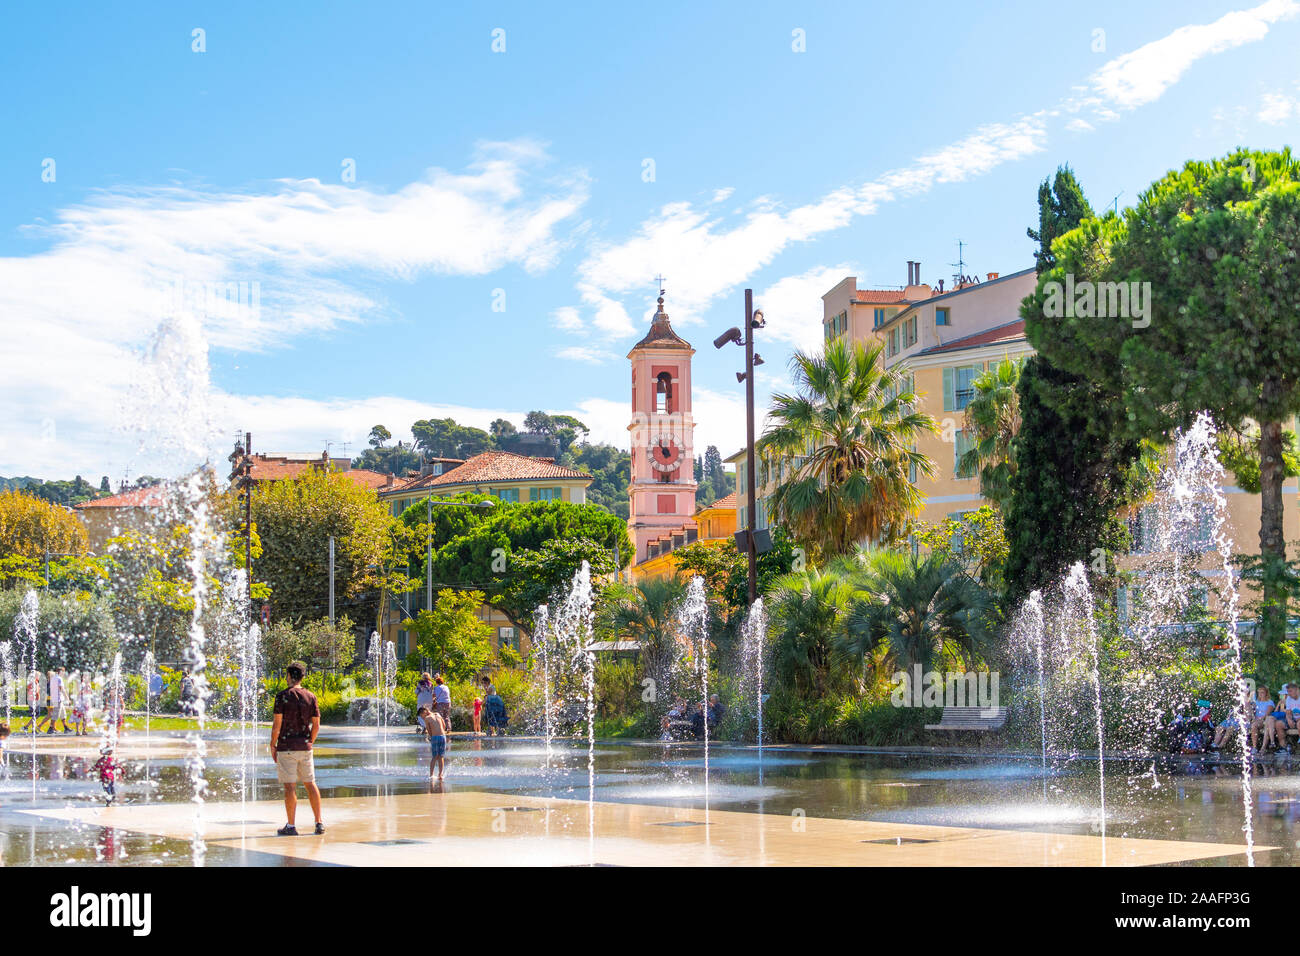 French adults and children play in the water fountain spray at the Paillon Promenade in the city of Nice, France on the French Riviera. Stock Photo